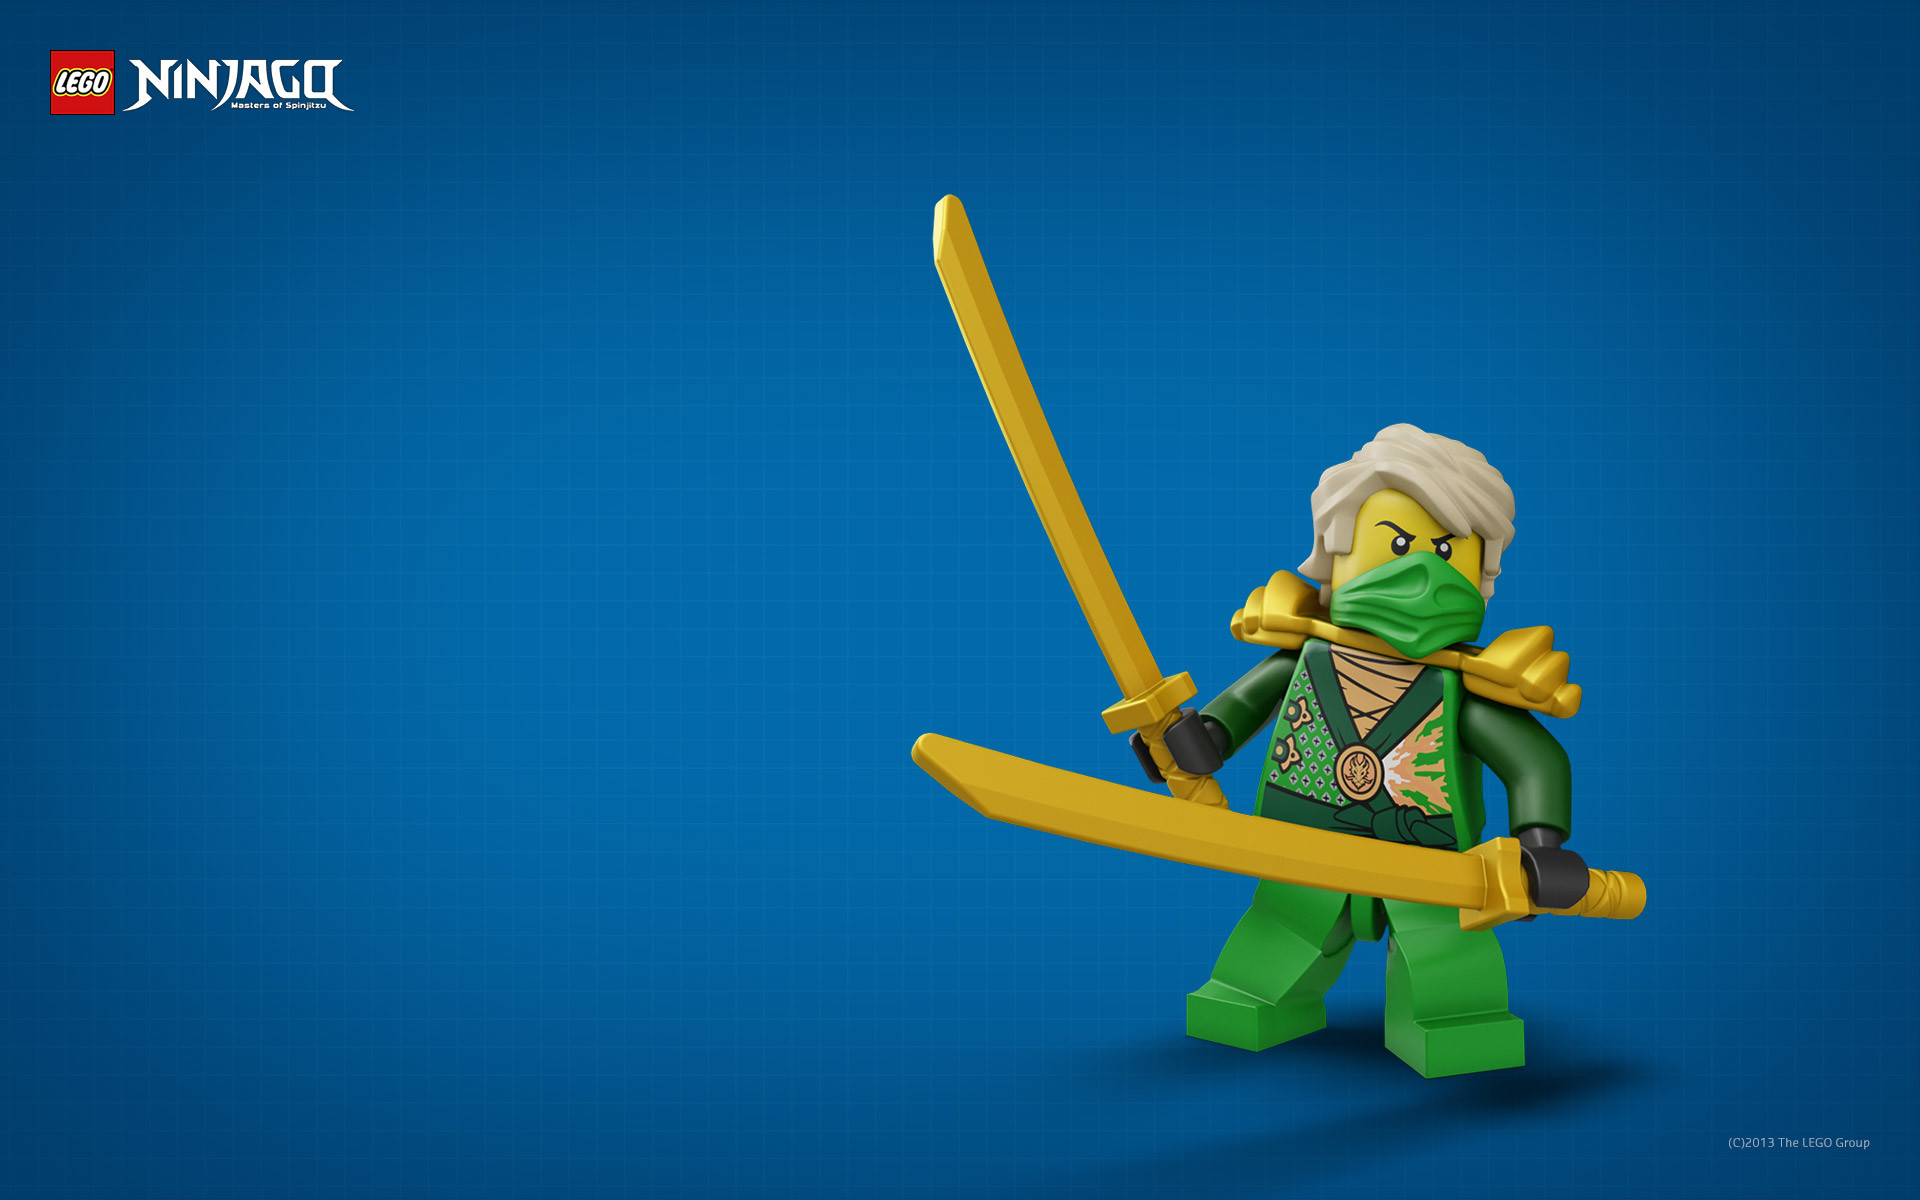 1920x1200 Wallpaper: LEGO Ninjago - Lloyd